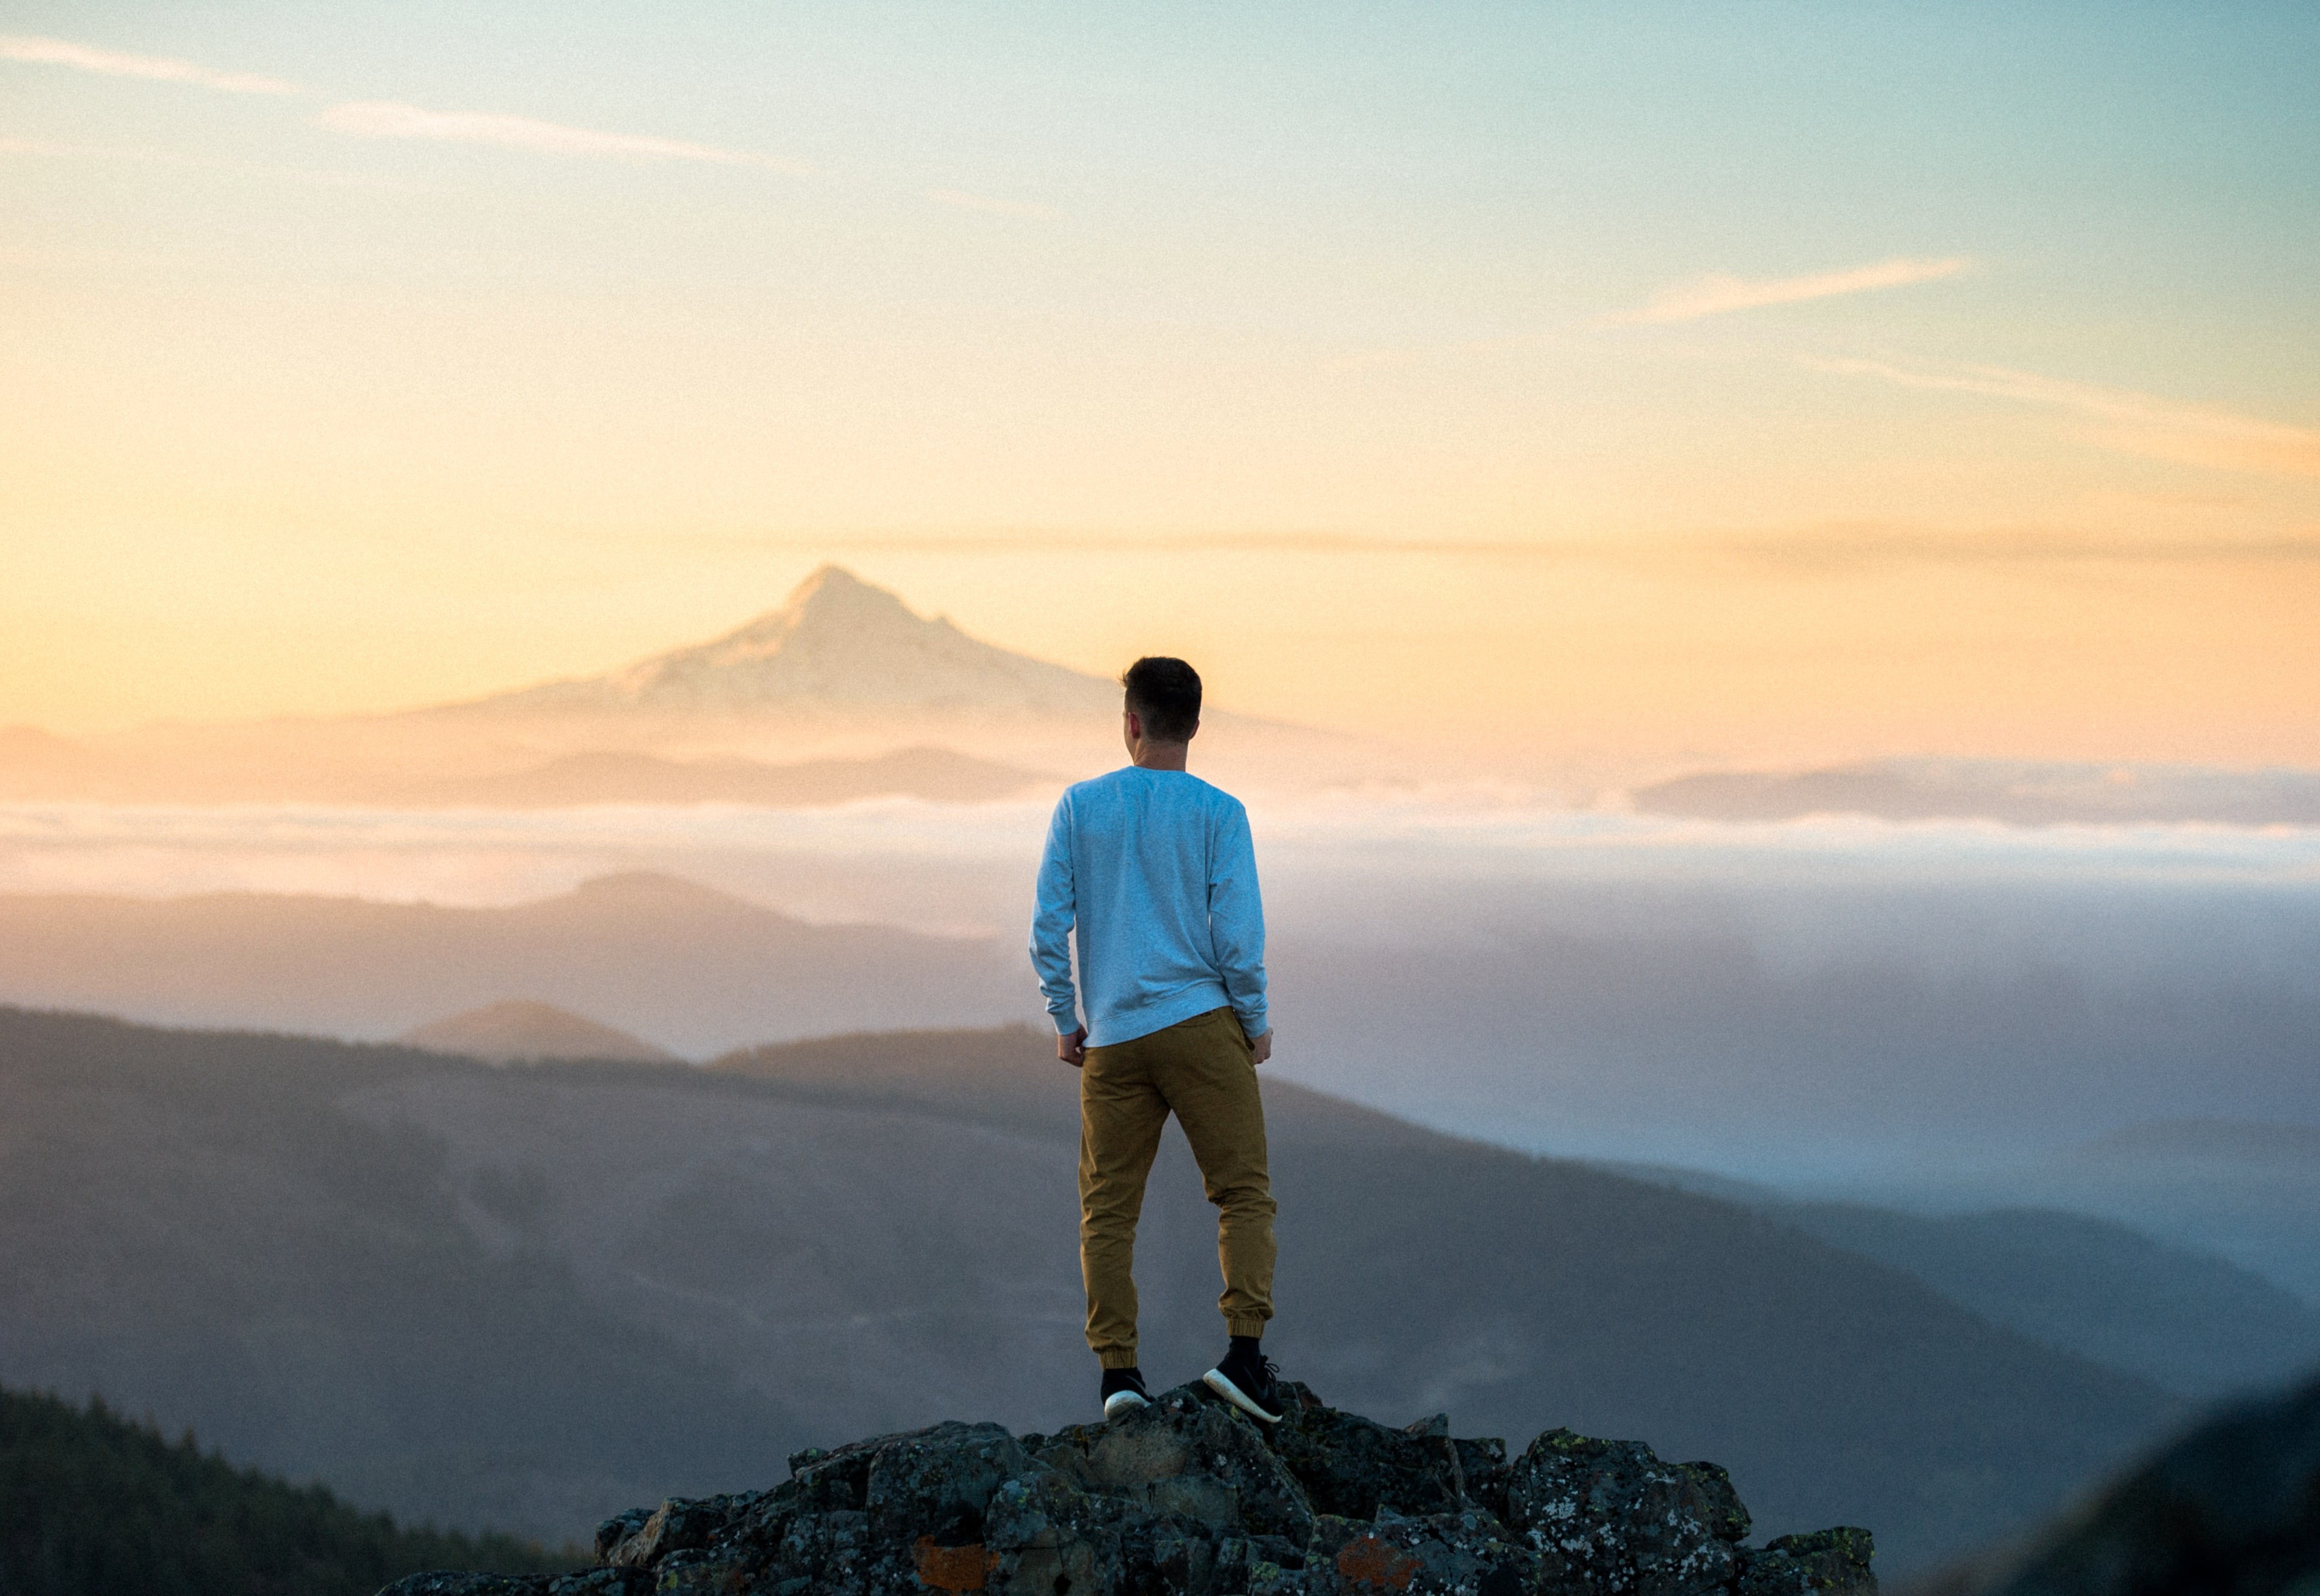 man wearing light blue top standing on top of hill overlooking mountains and foggy valley